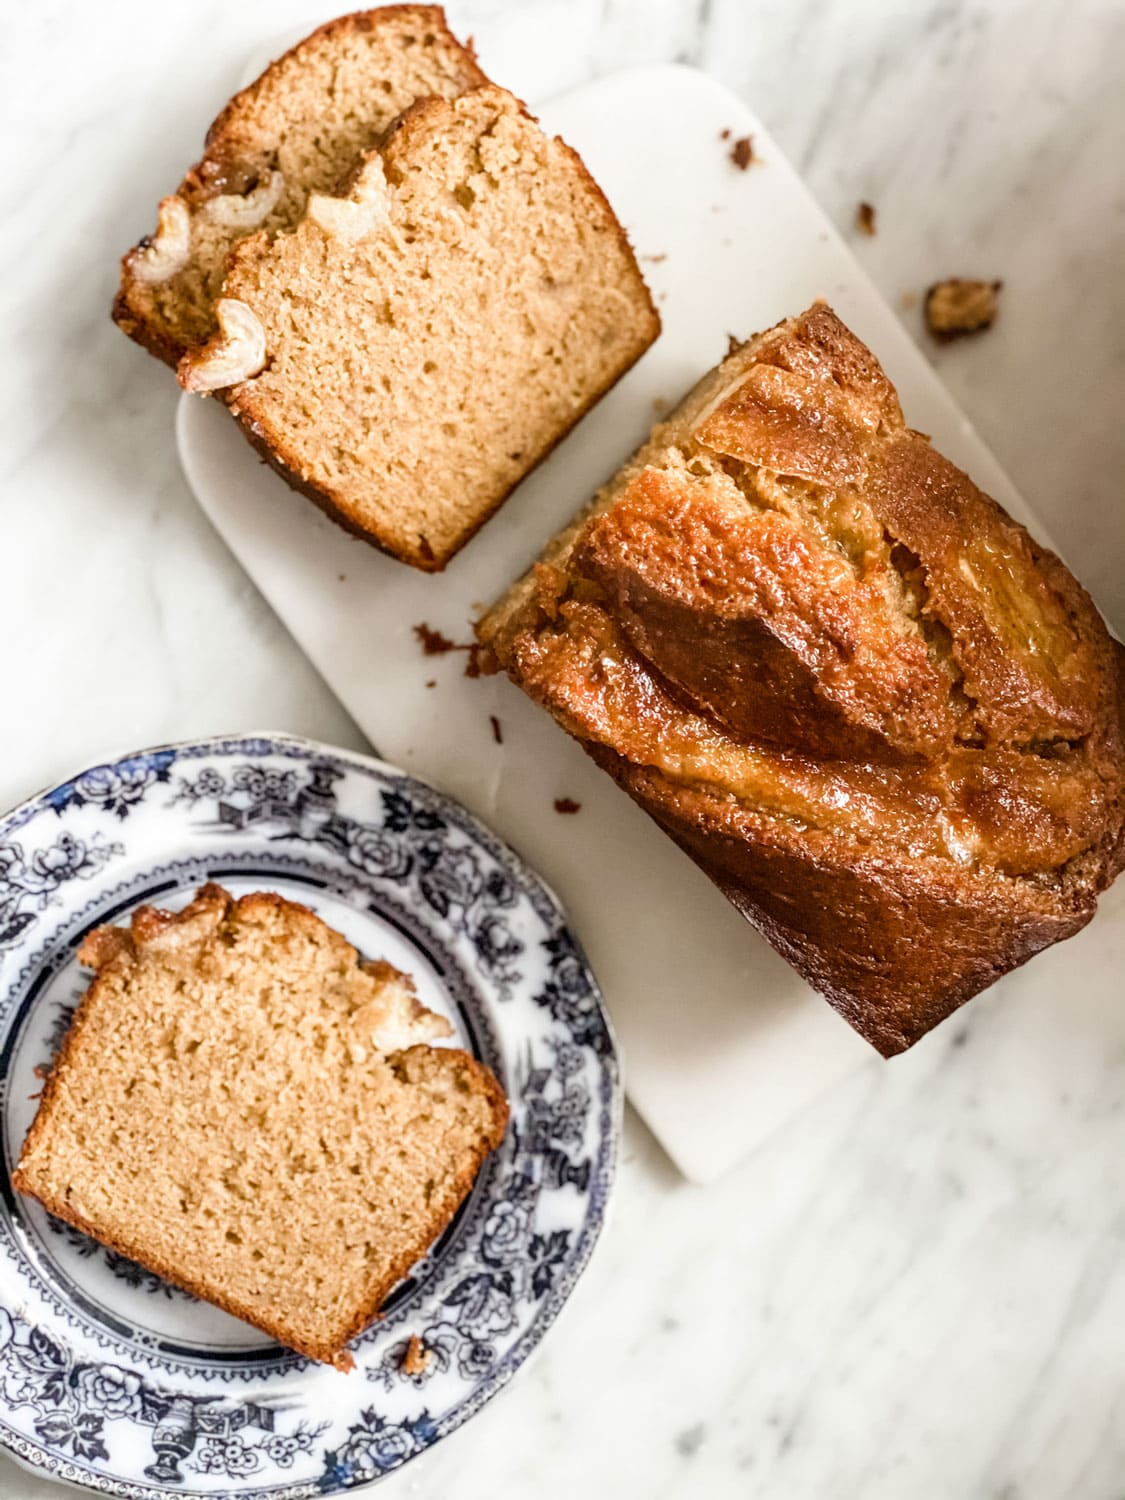 banana bread on black and white ironstone plate